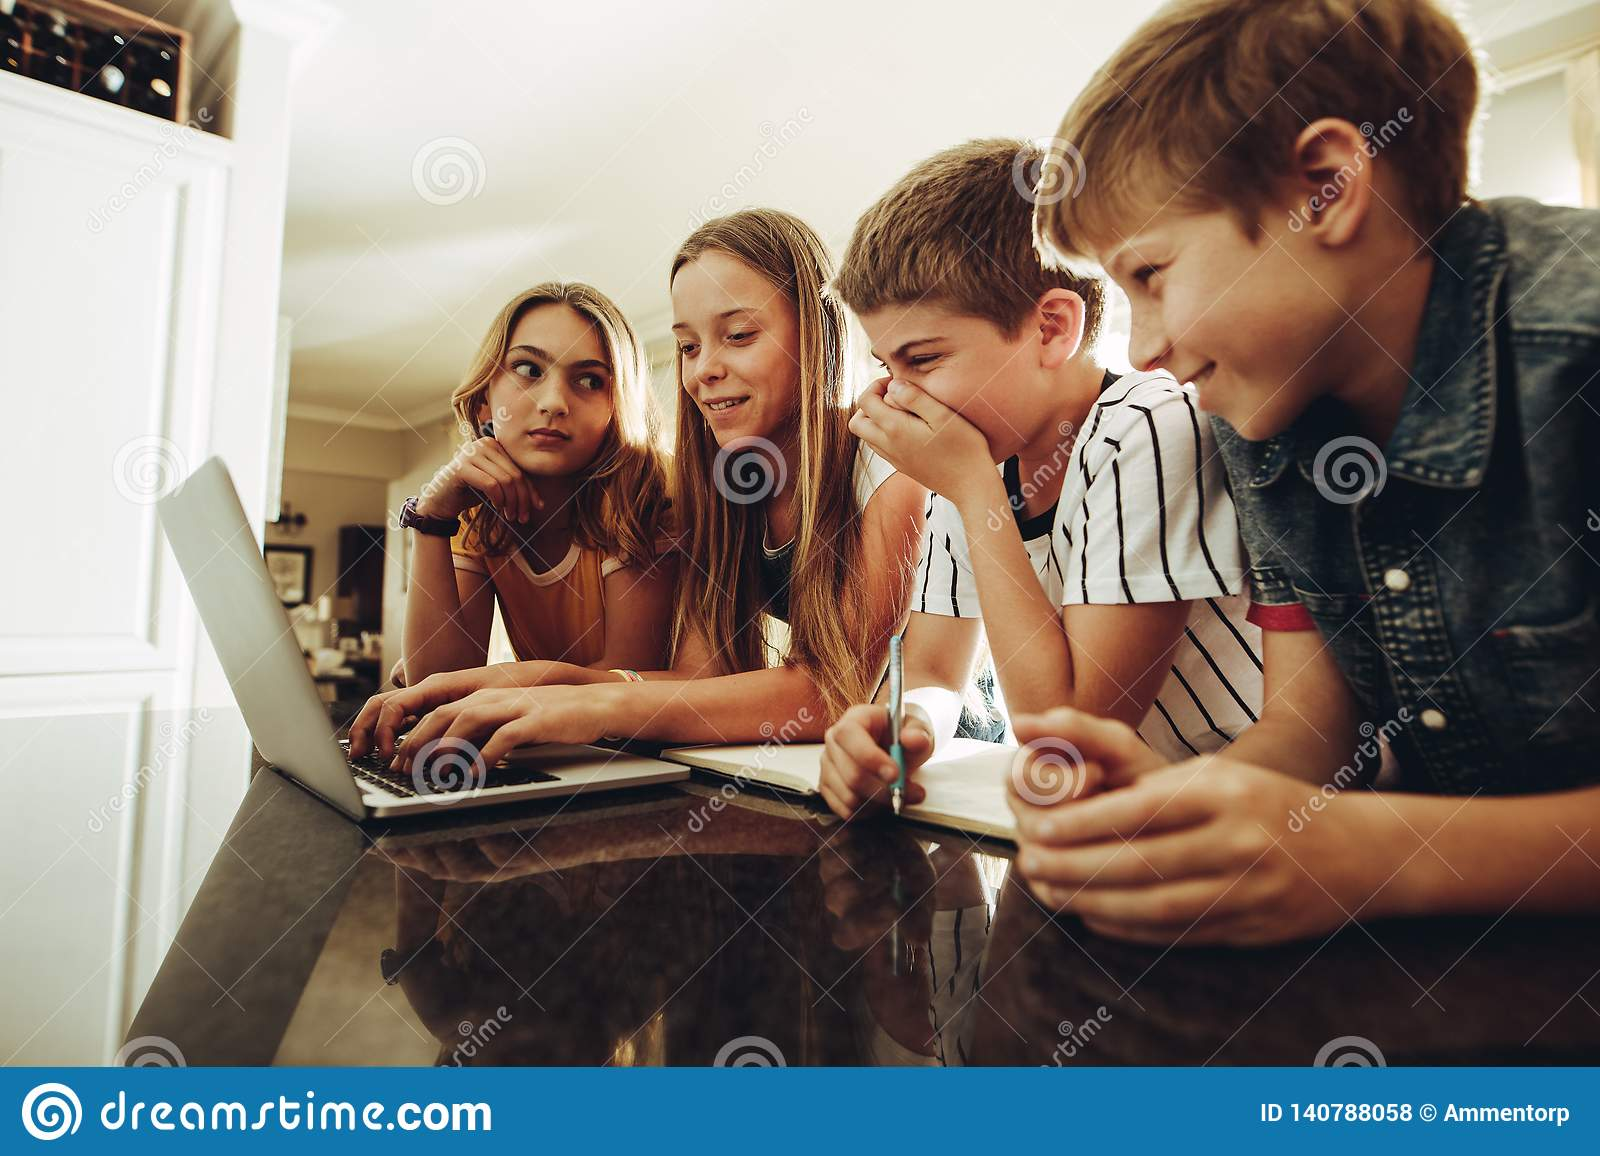 Kids sharing knowledge using technology